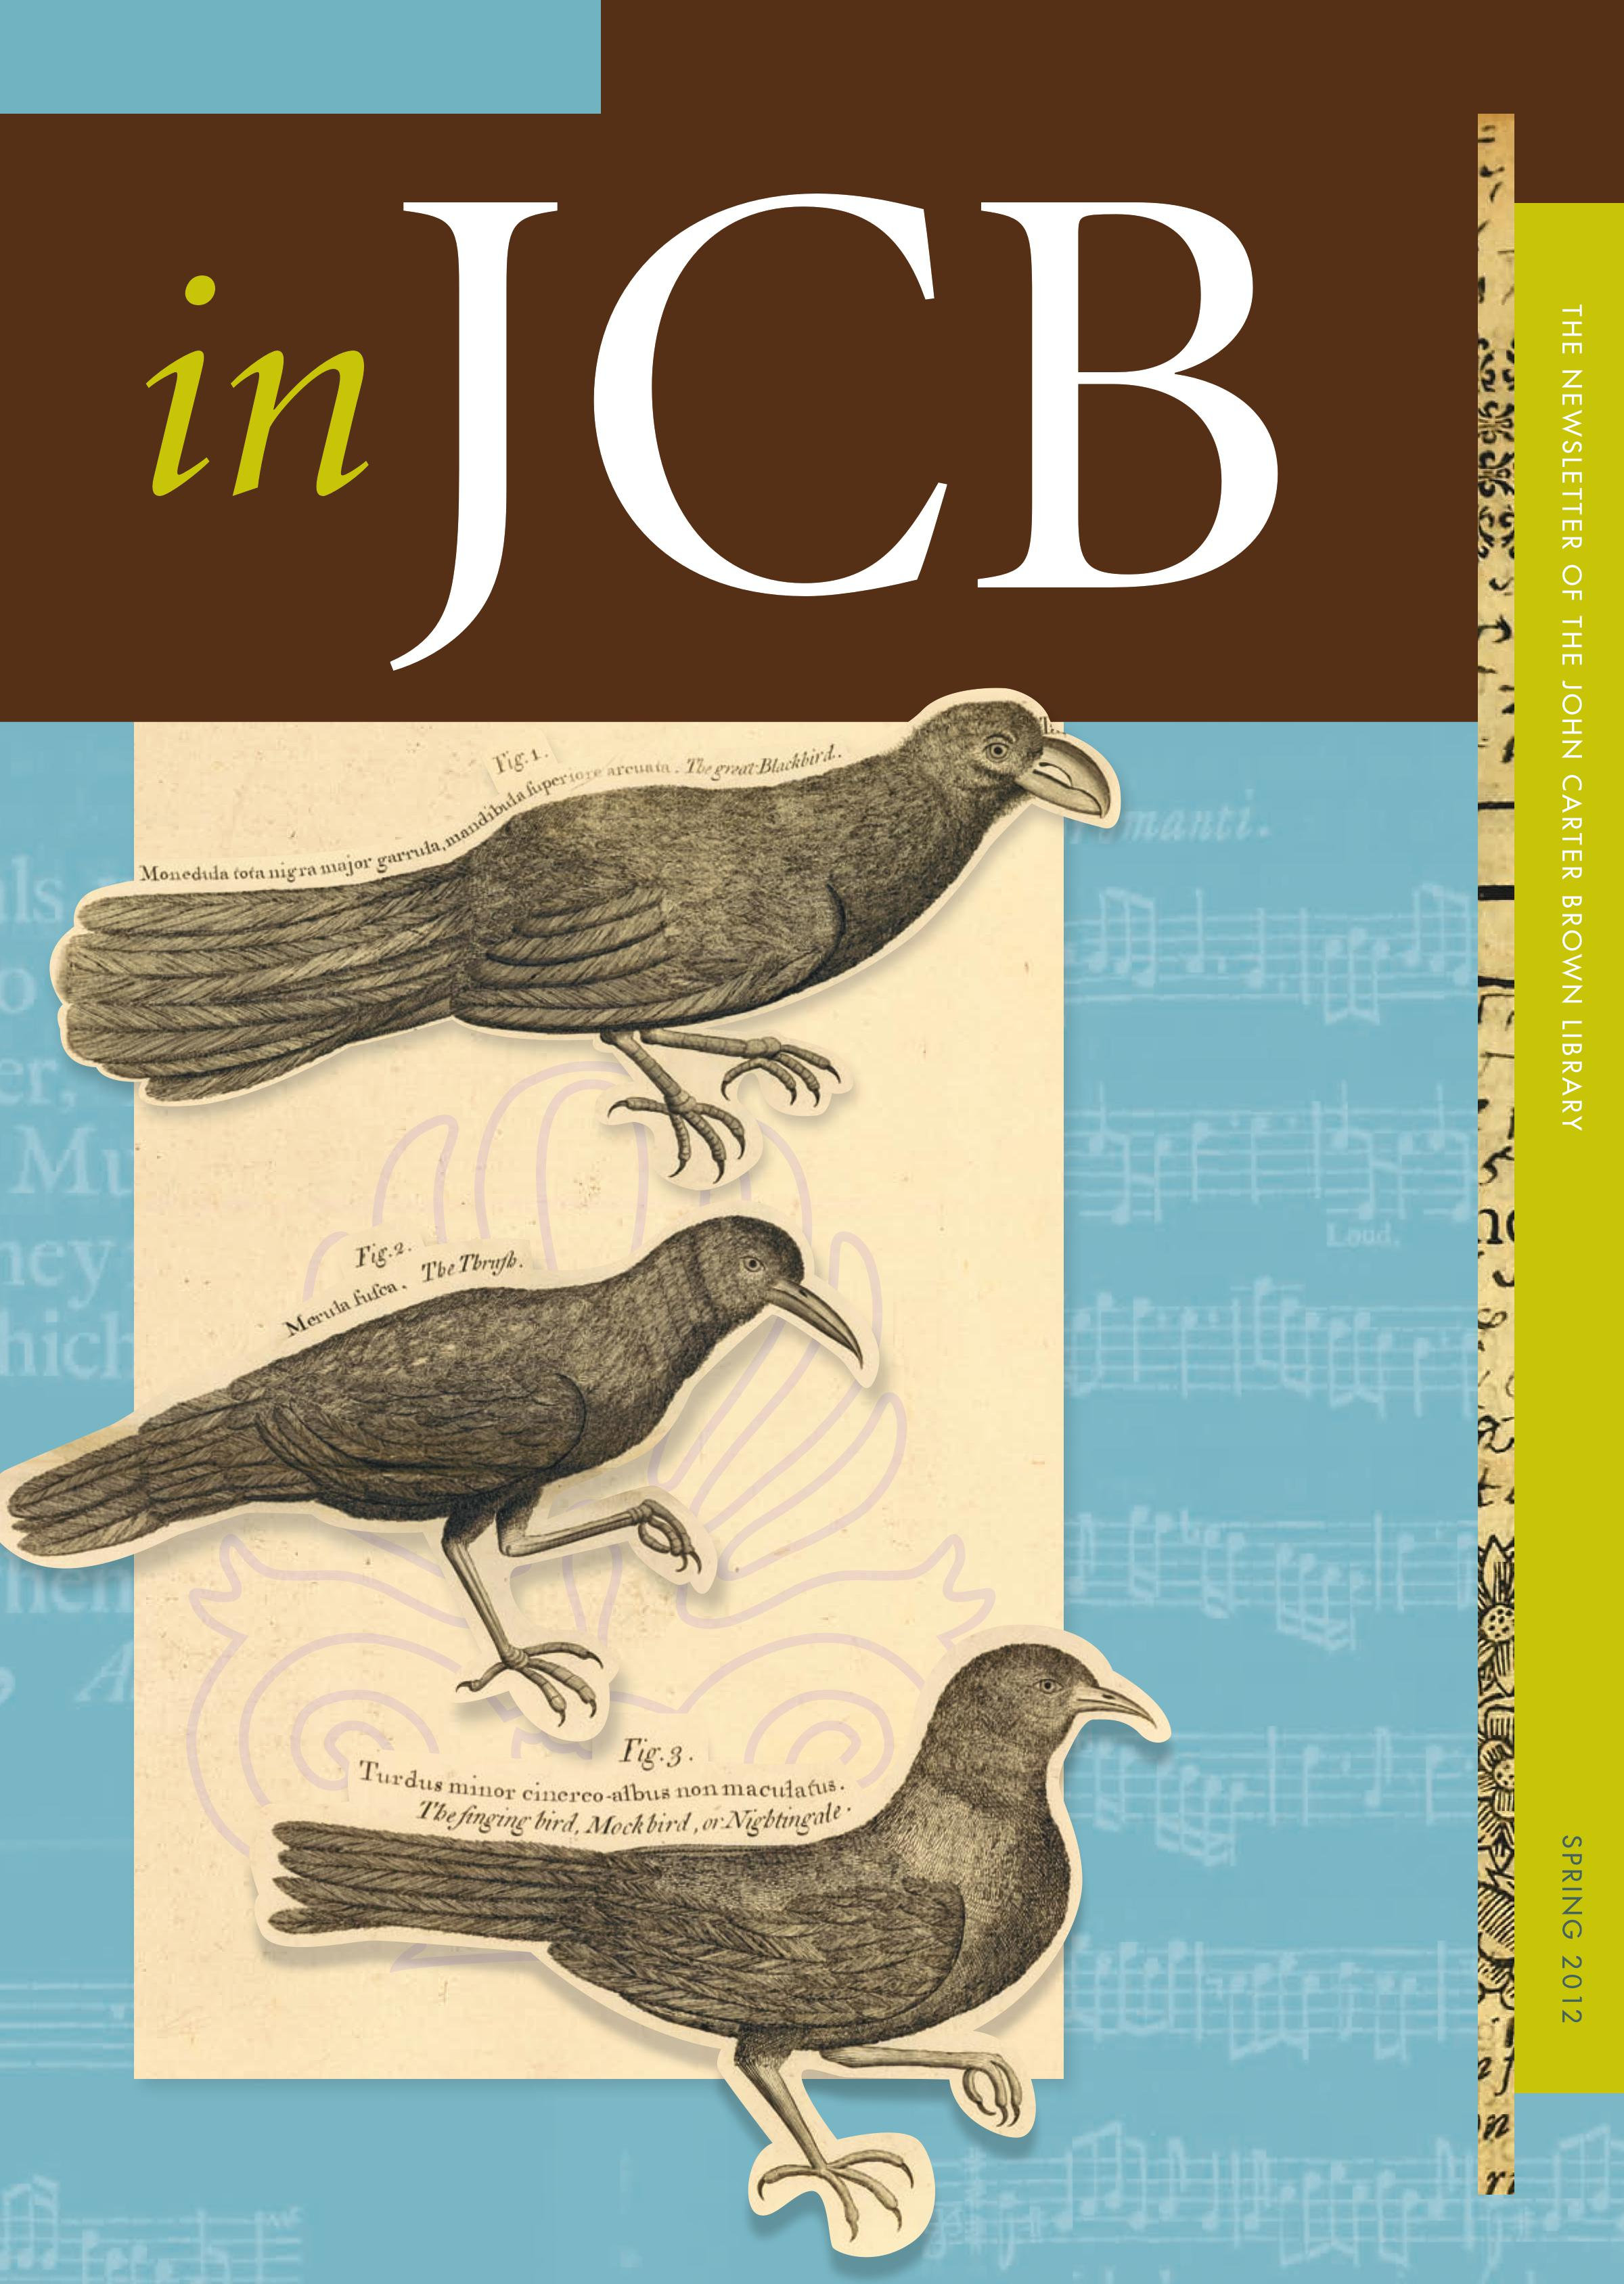 colorful cover of the In JCB newsletter, showing music notes in the background and cut-out images of three birds in the foreground